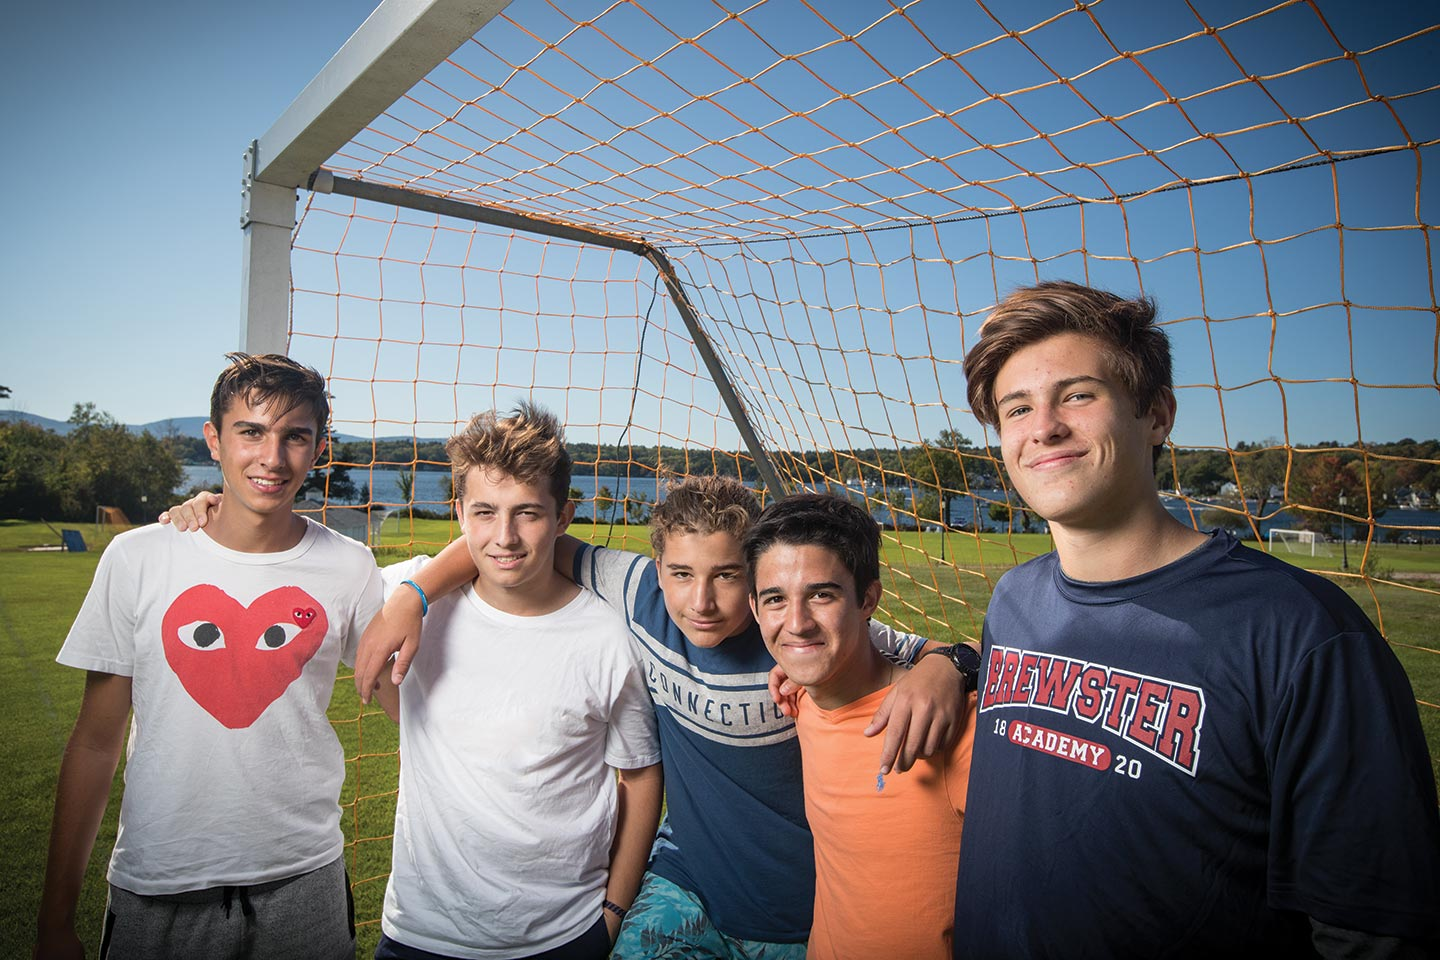 Boys posing in front of soccer net on Brewster field